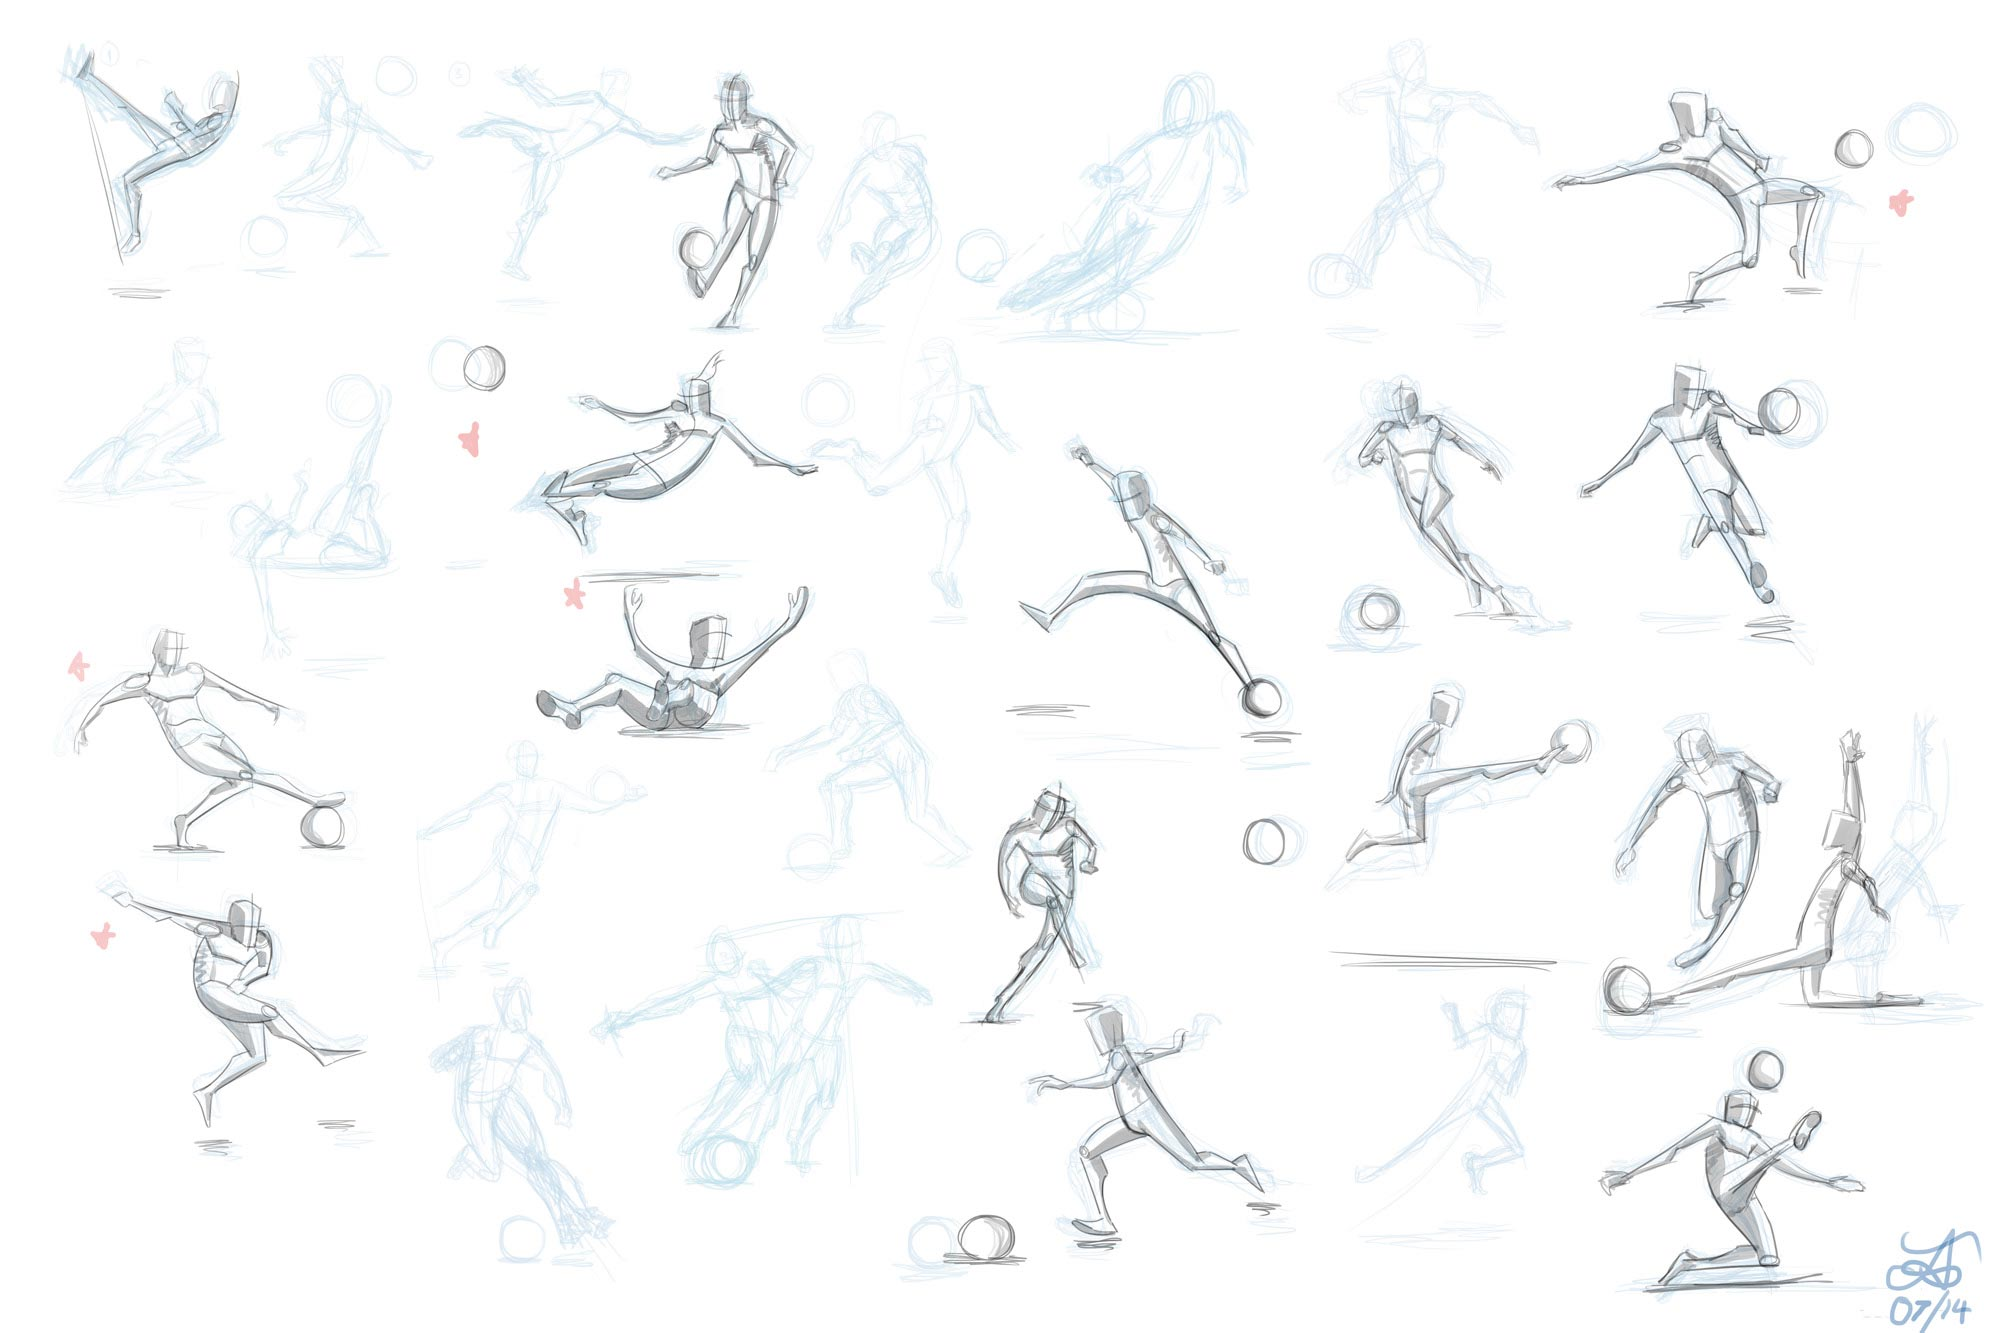 Football player drawing reference